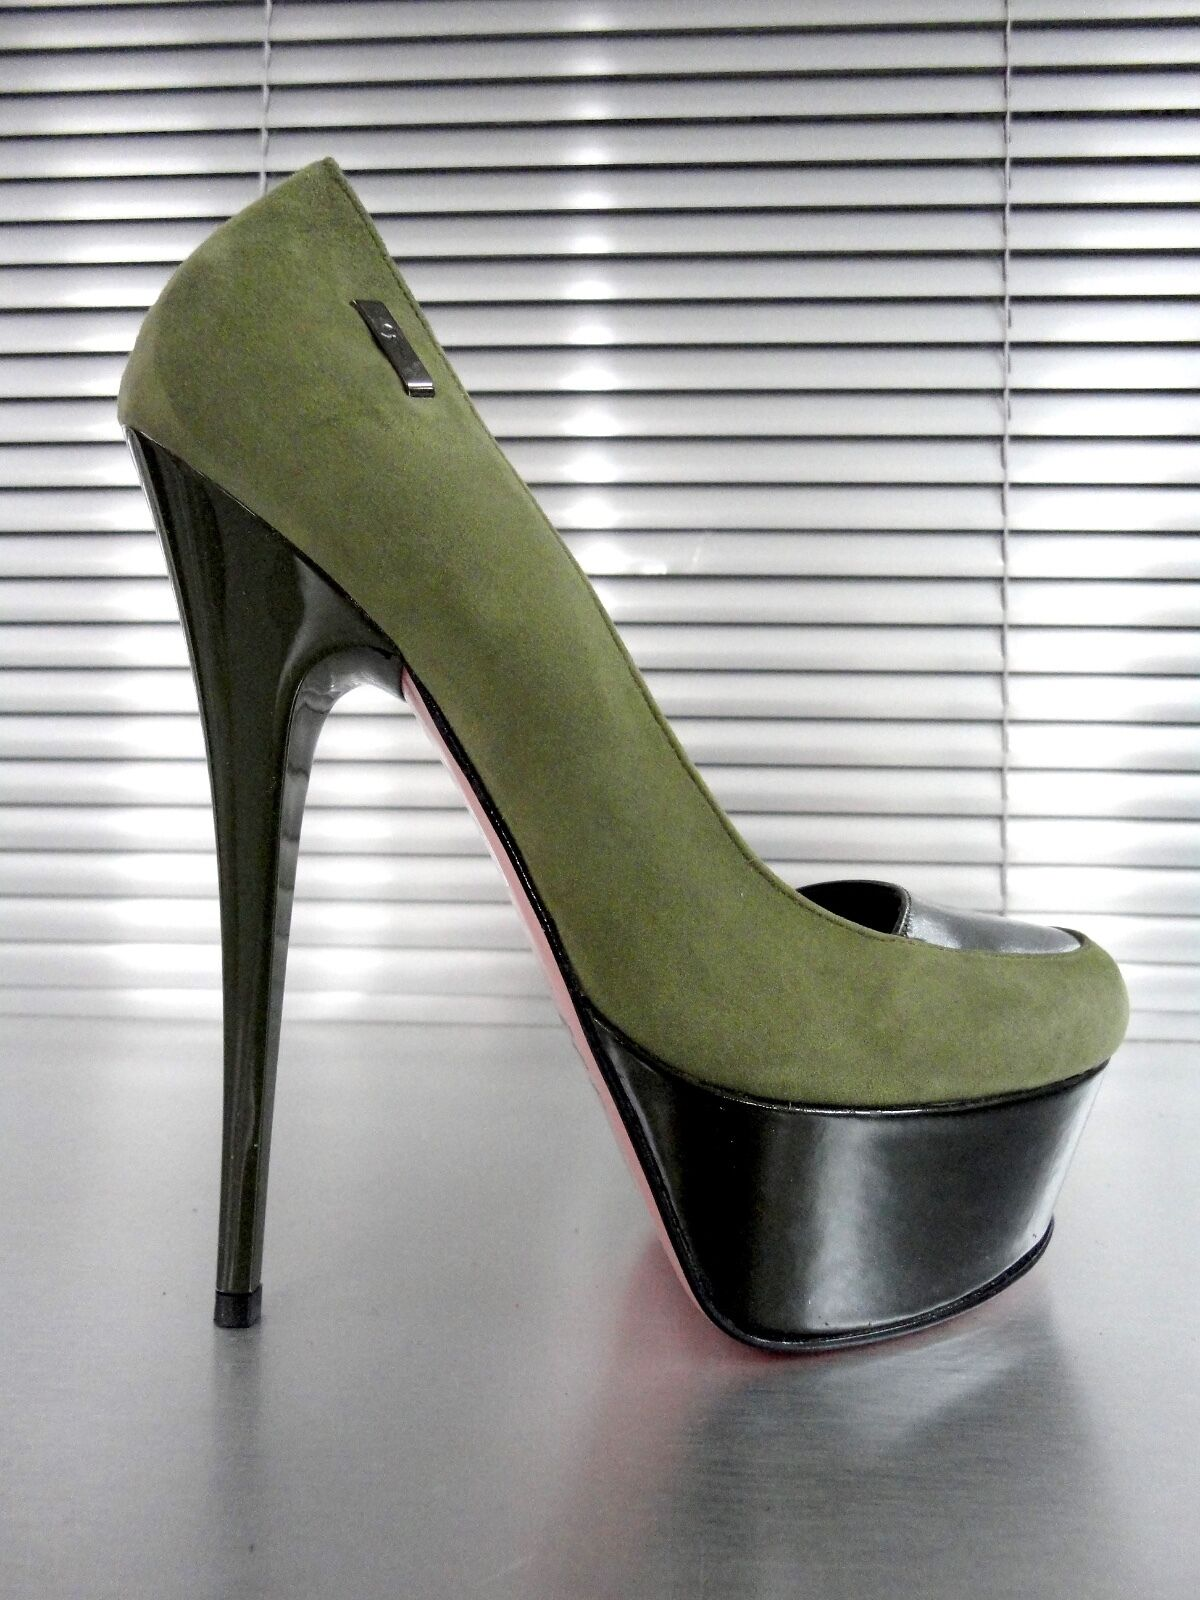 Descuento barato MORI ITALY PLATFORM HEELS PUMPS SCHUHE SHOES KROCO LEATHER LIGHT VERDE GREEN 38